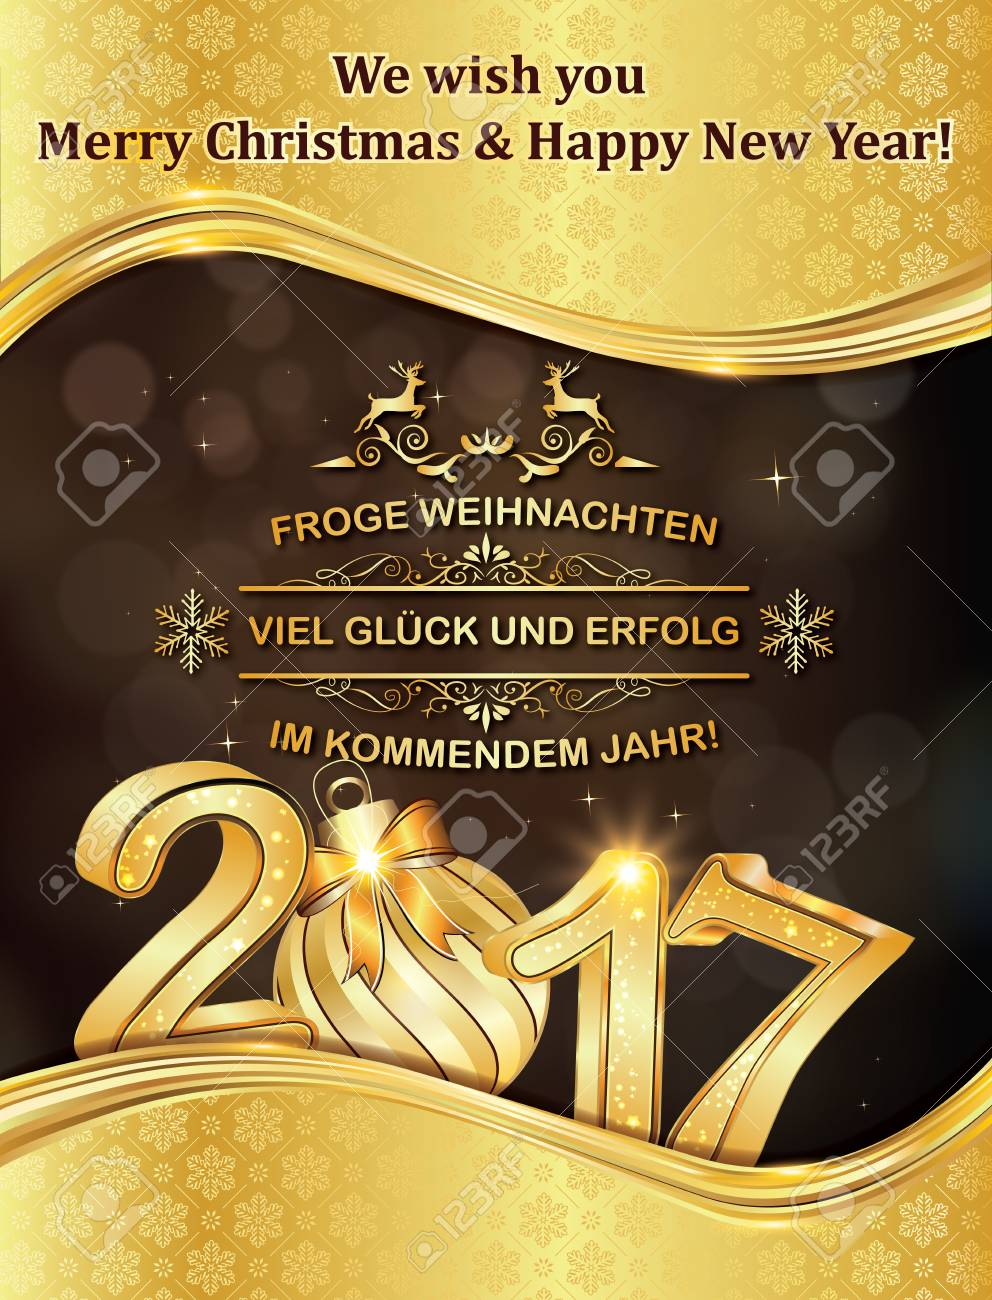 German greeting card merry christmas and happy new year frohe german greeting card merry christmas and happy new year frohe weihnachten und ein gluckliches m4hsunfo